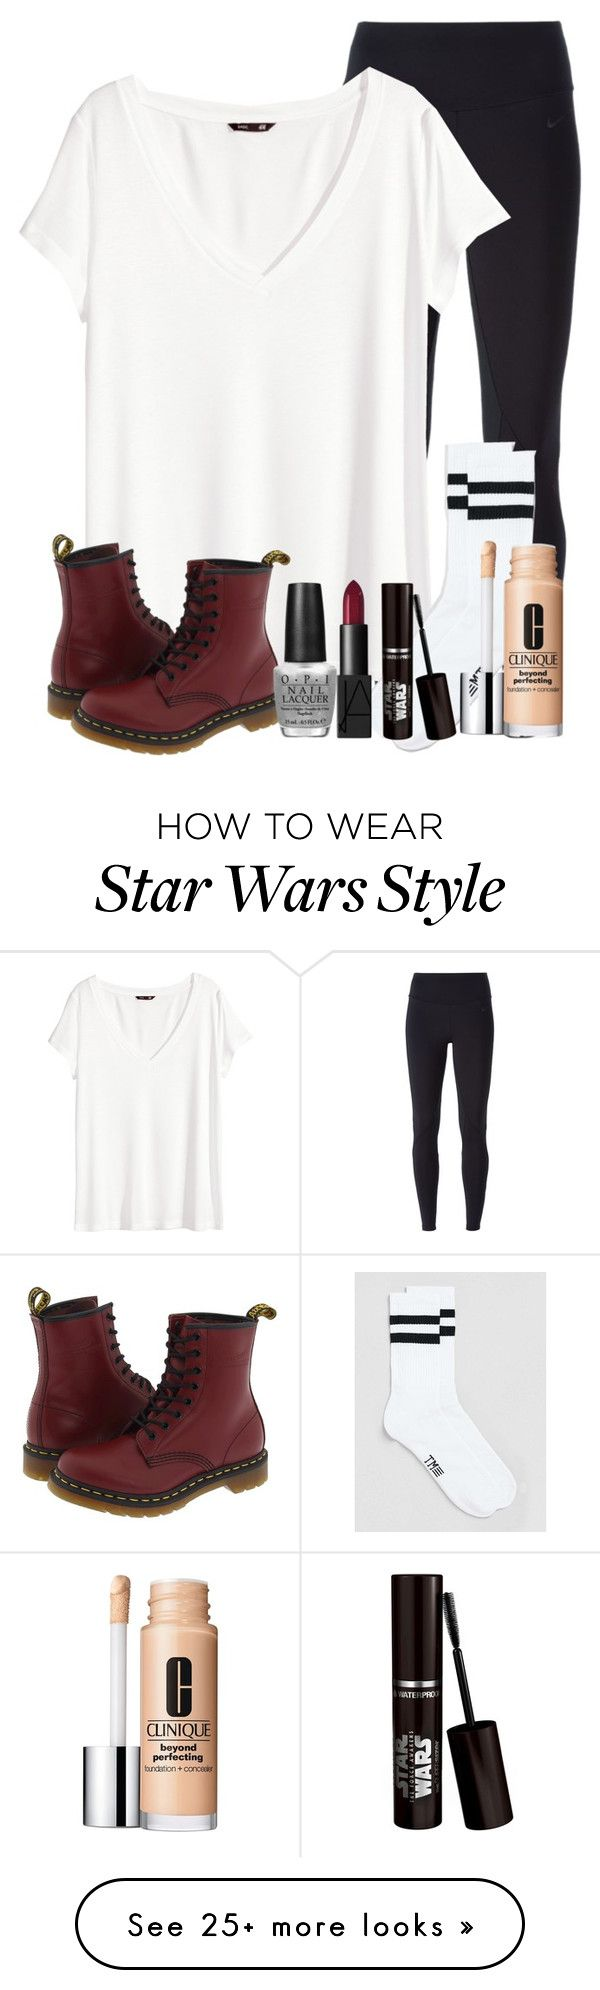 """casual"" by bradey-5 on Polyvore featuring NIKE, H&M, Topman, Clinique, Dr. Martens, OPI and NARS Cosmetics"